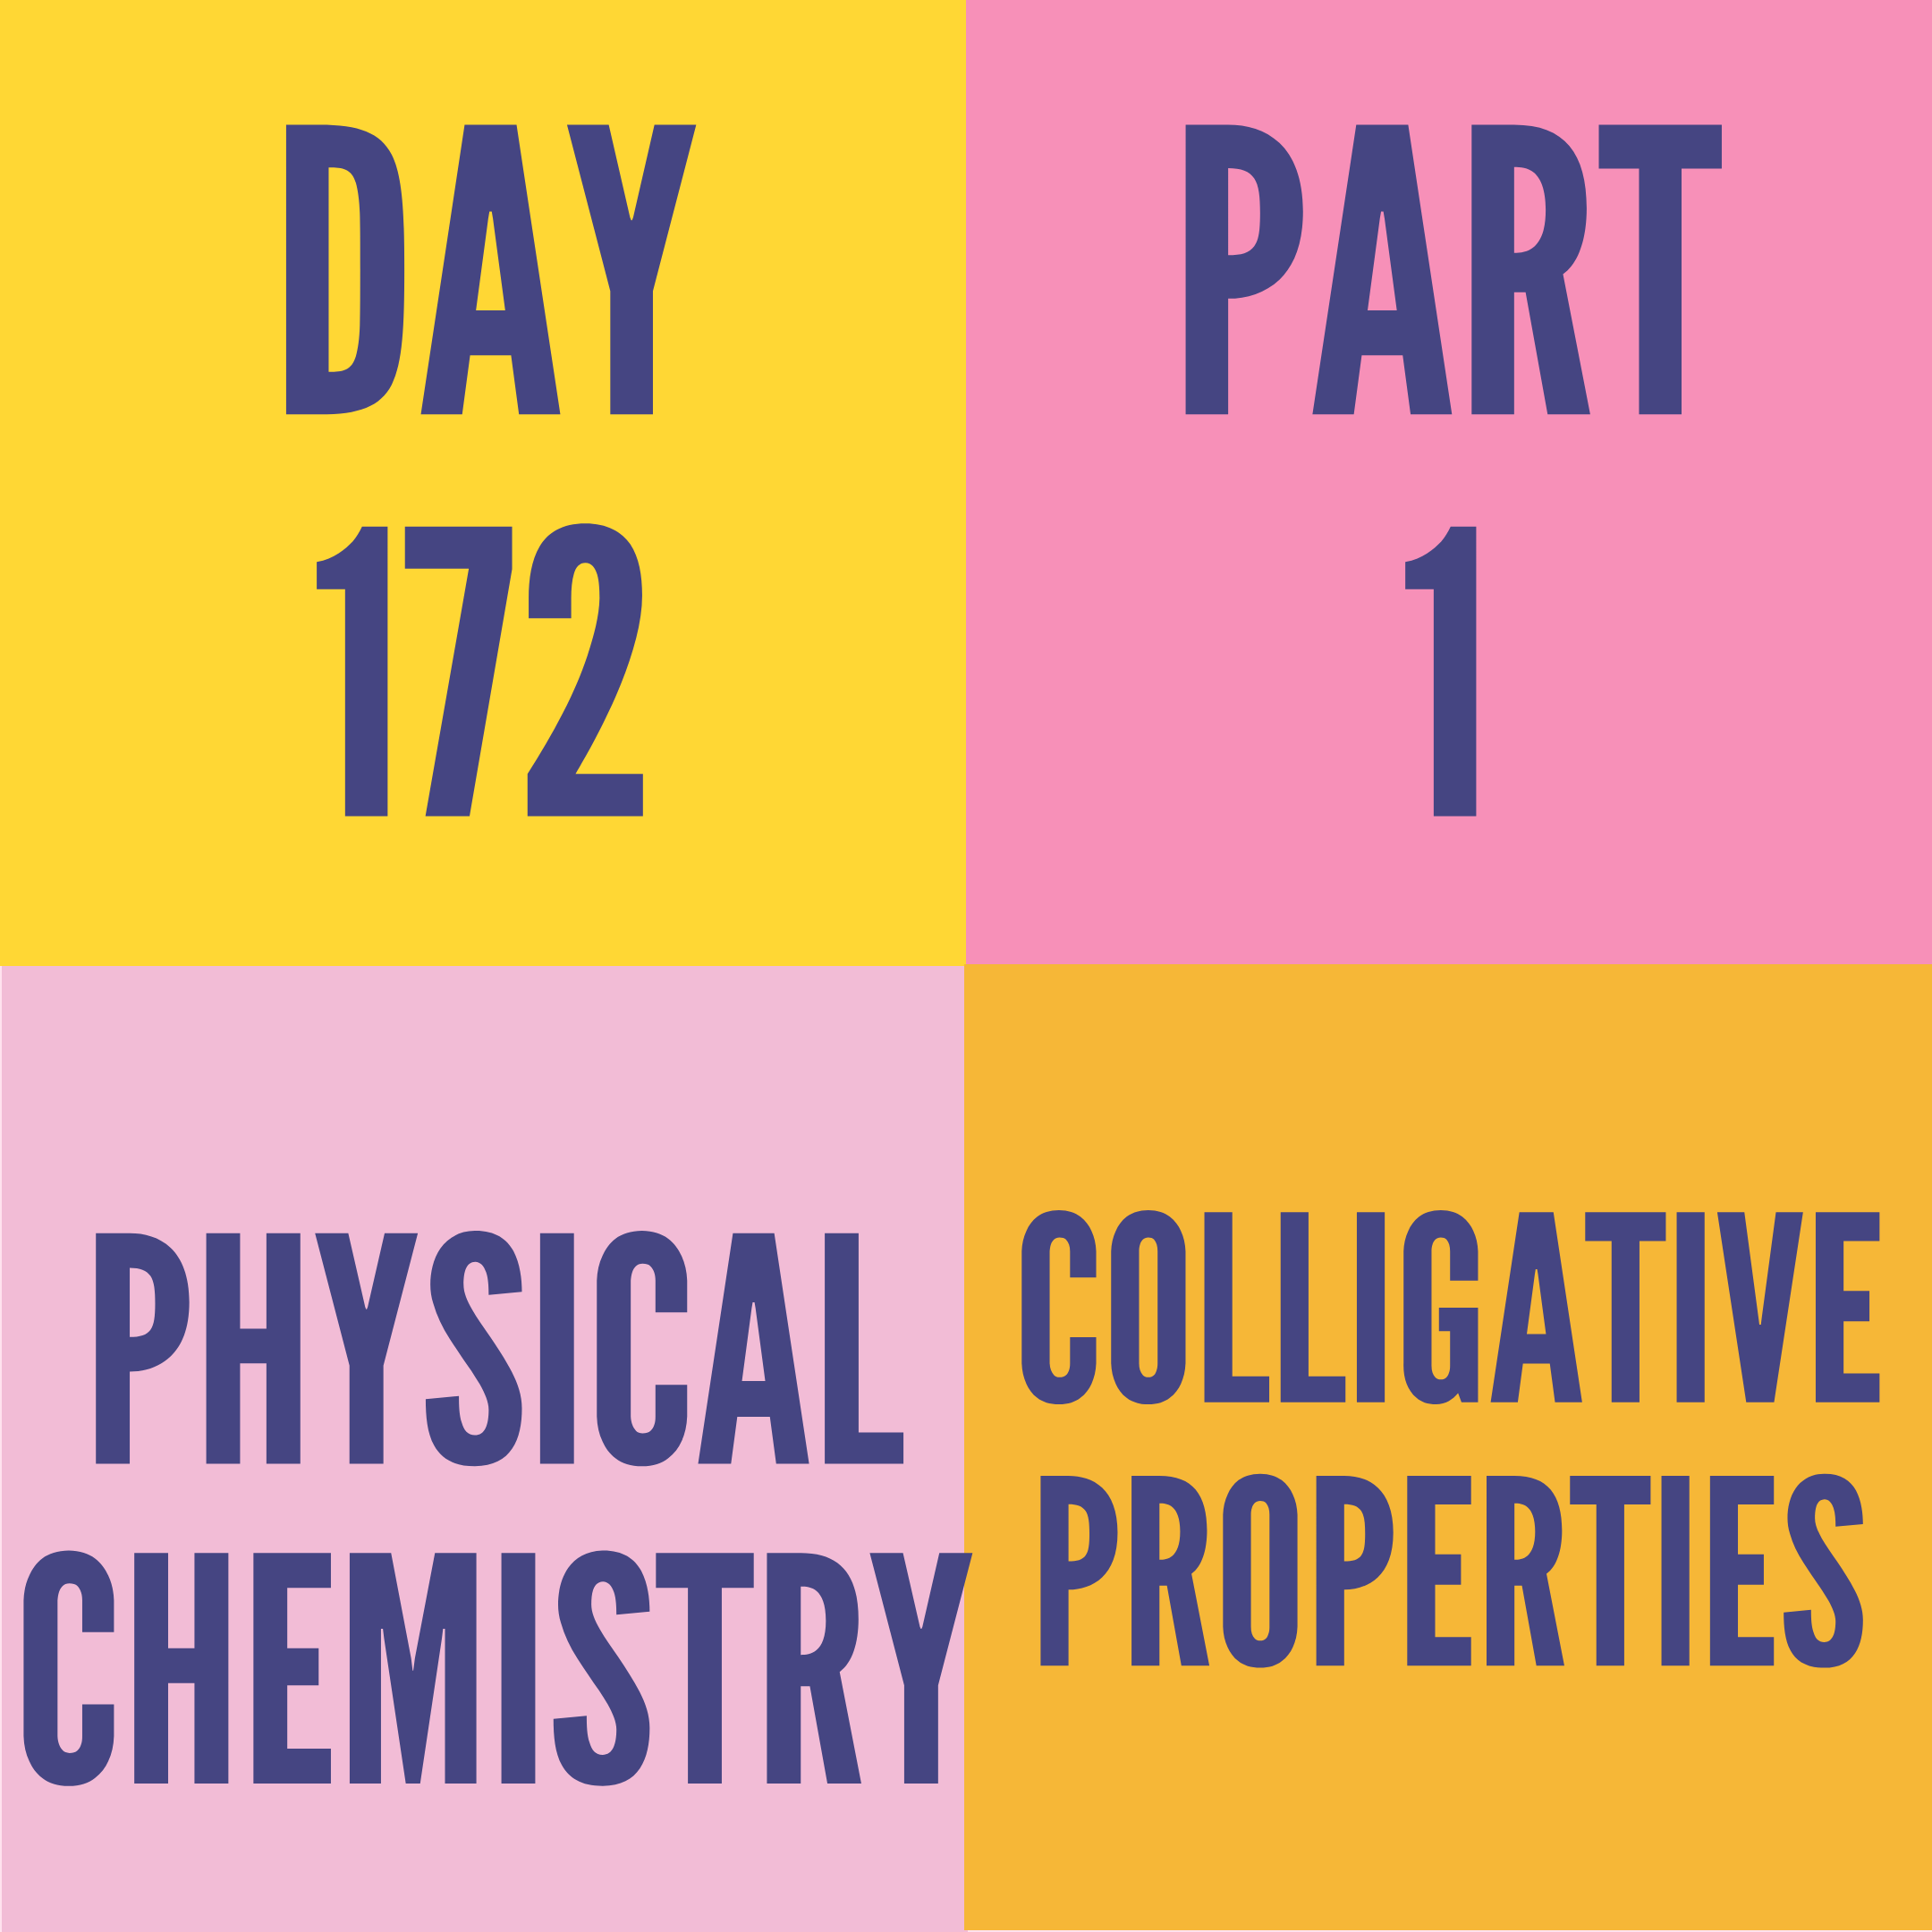 DAY-172 PART-1 (TARGET) COLLIGATIVE PROPERTIES